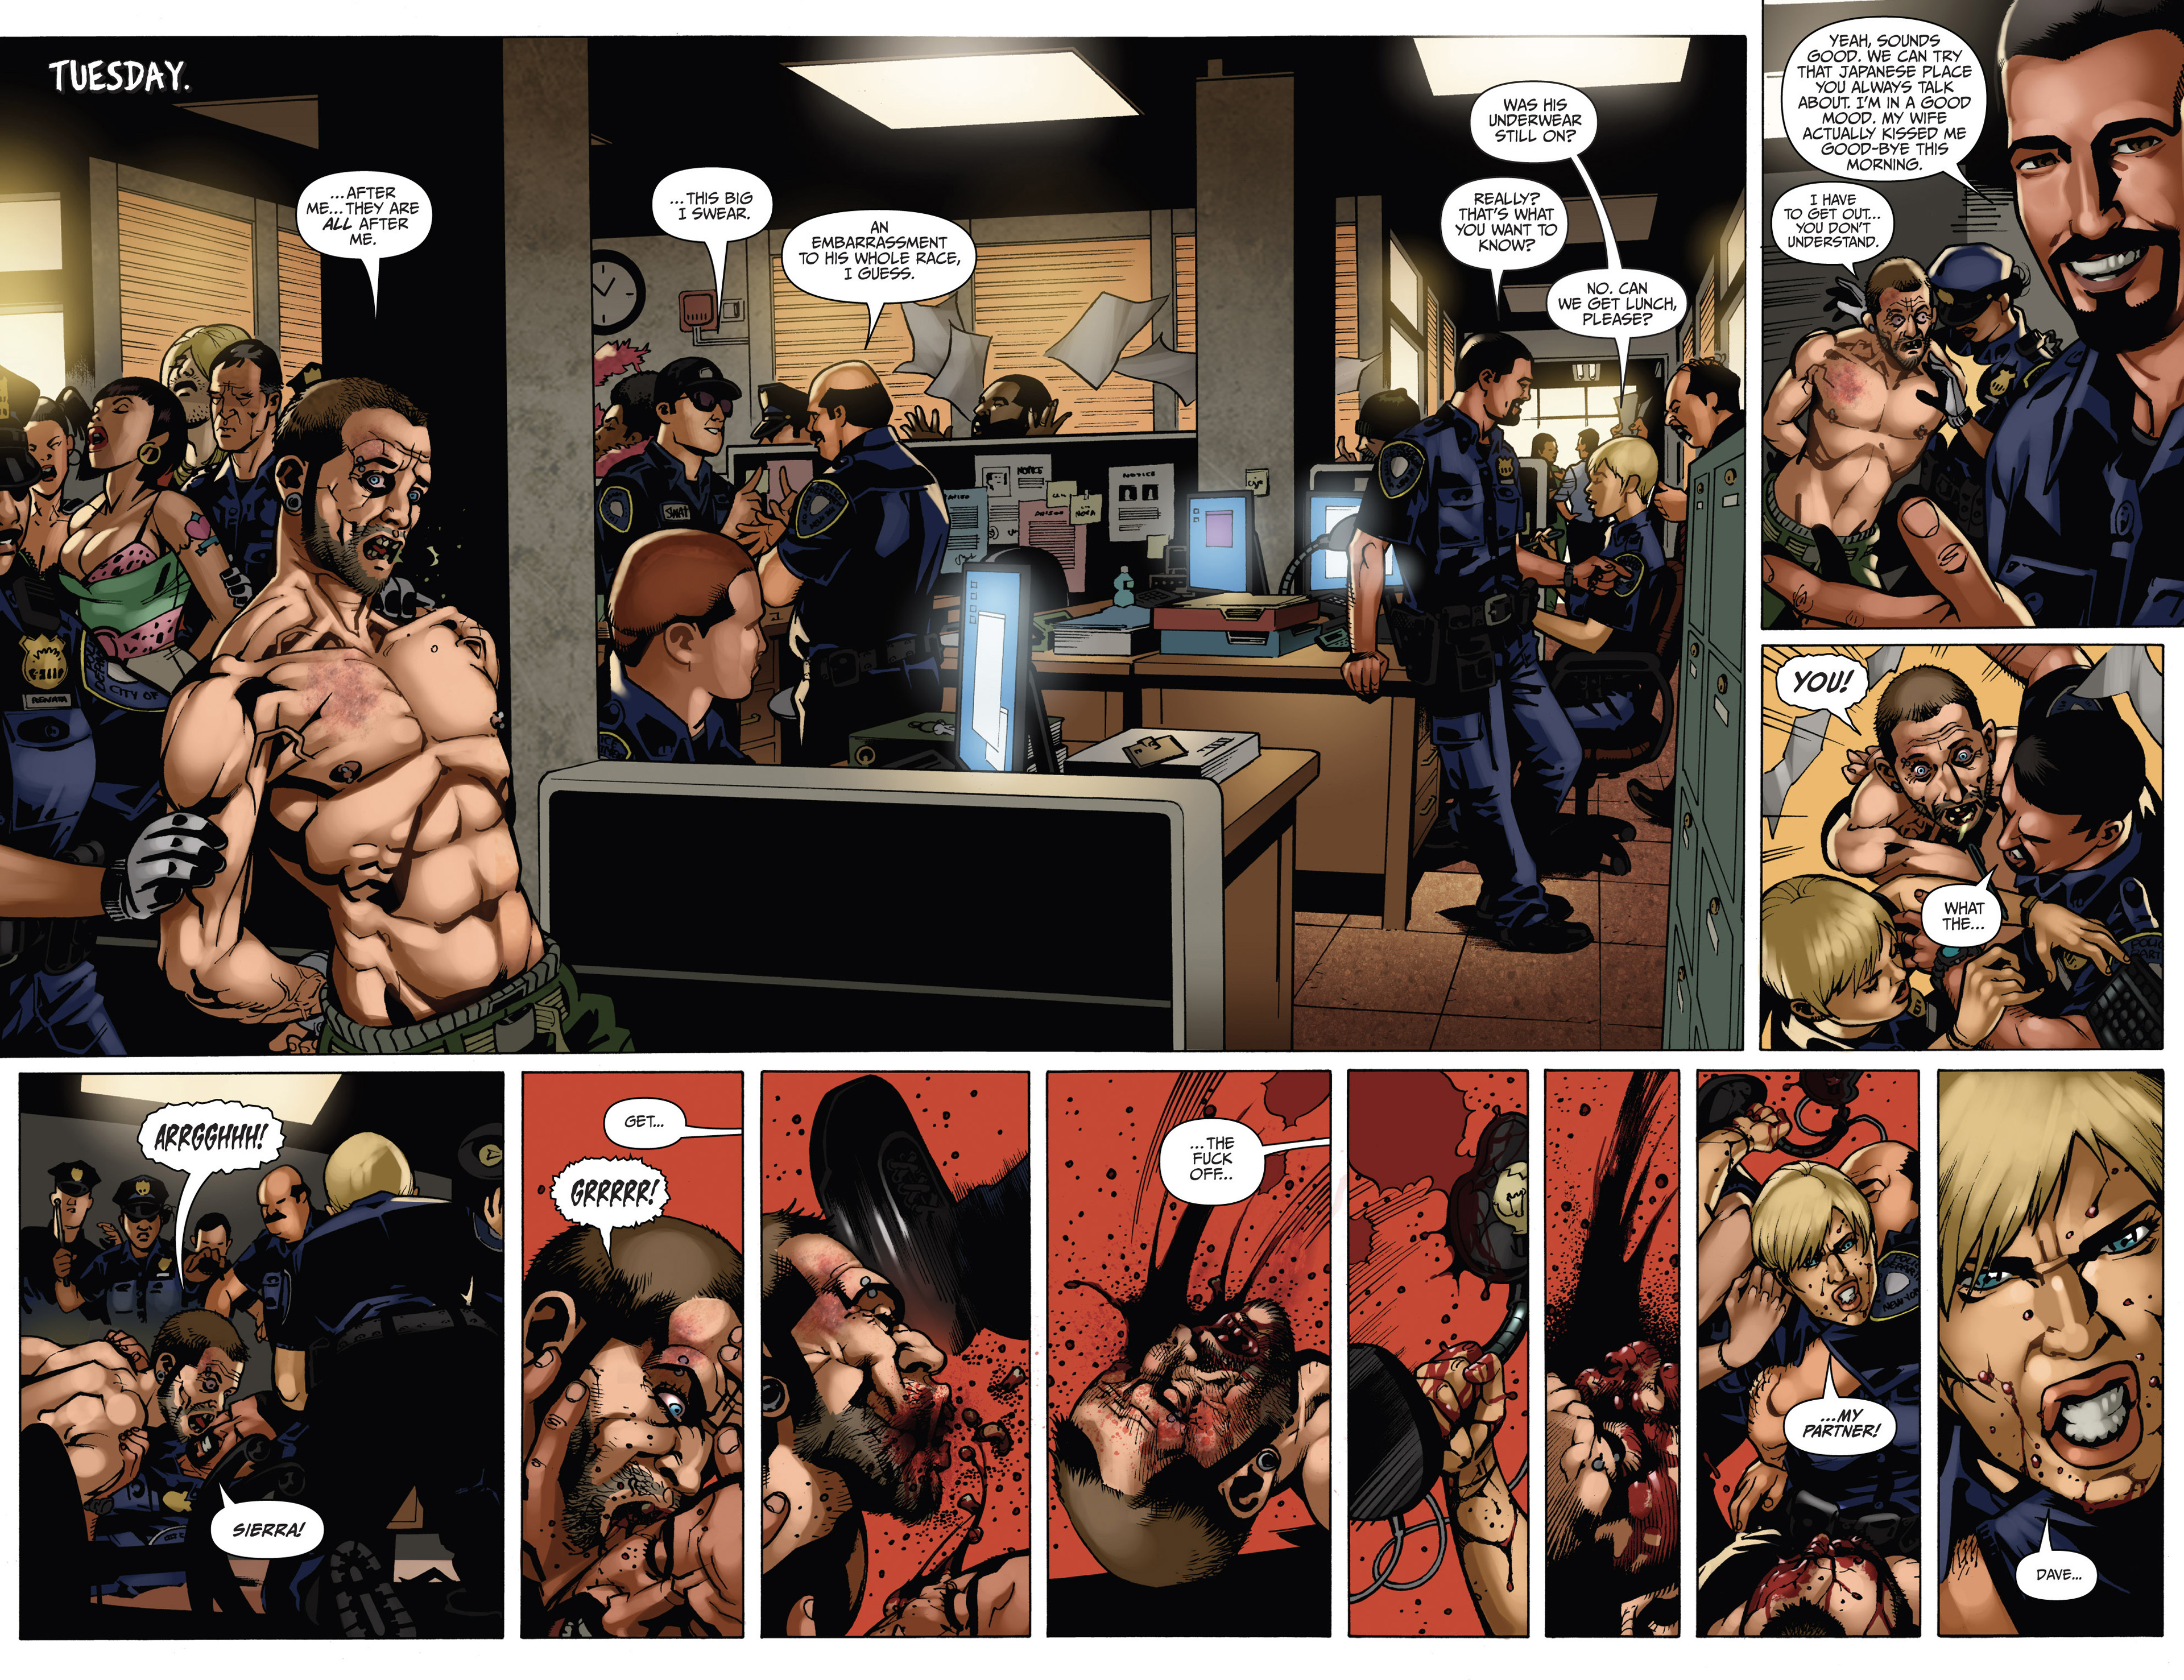 Read online Sex and Violence comic -  Issue # Full - 38